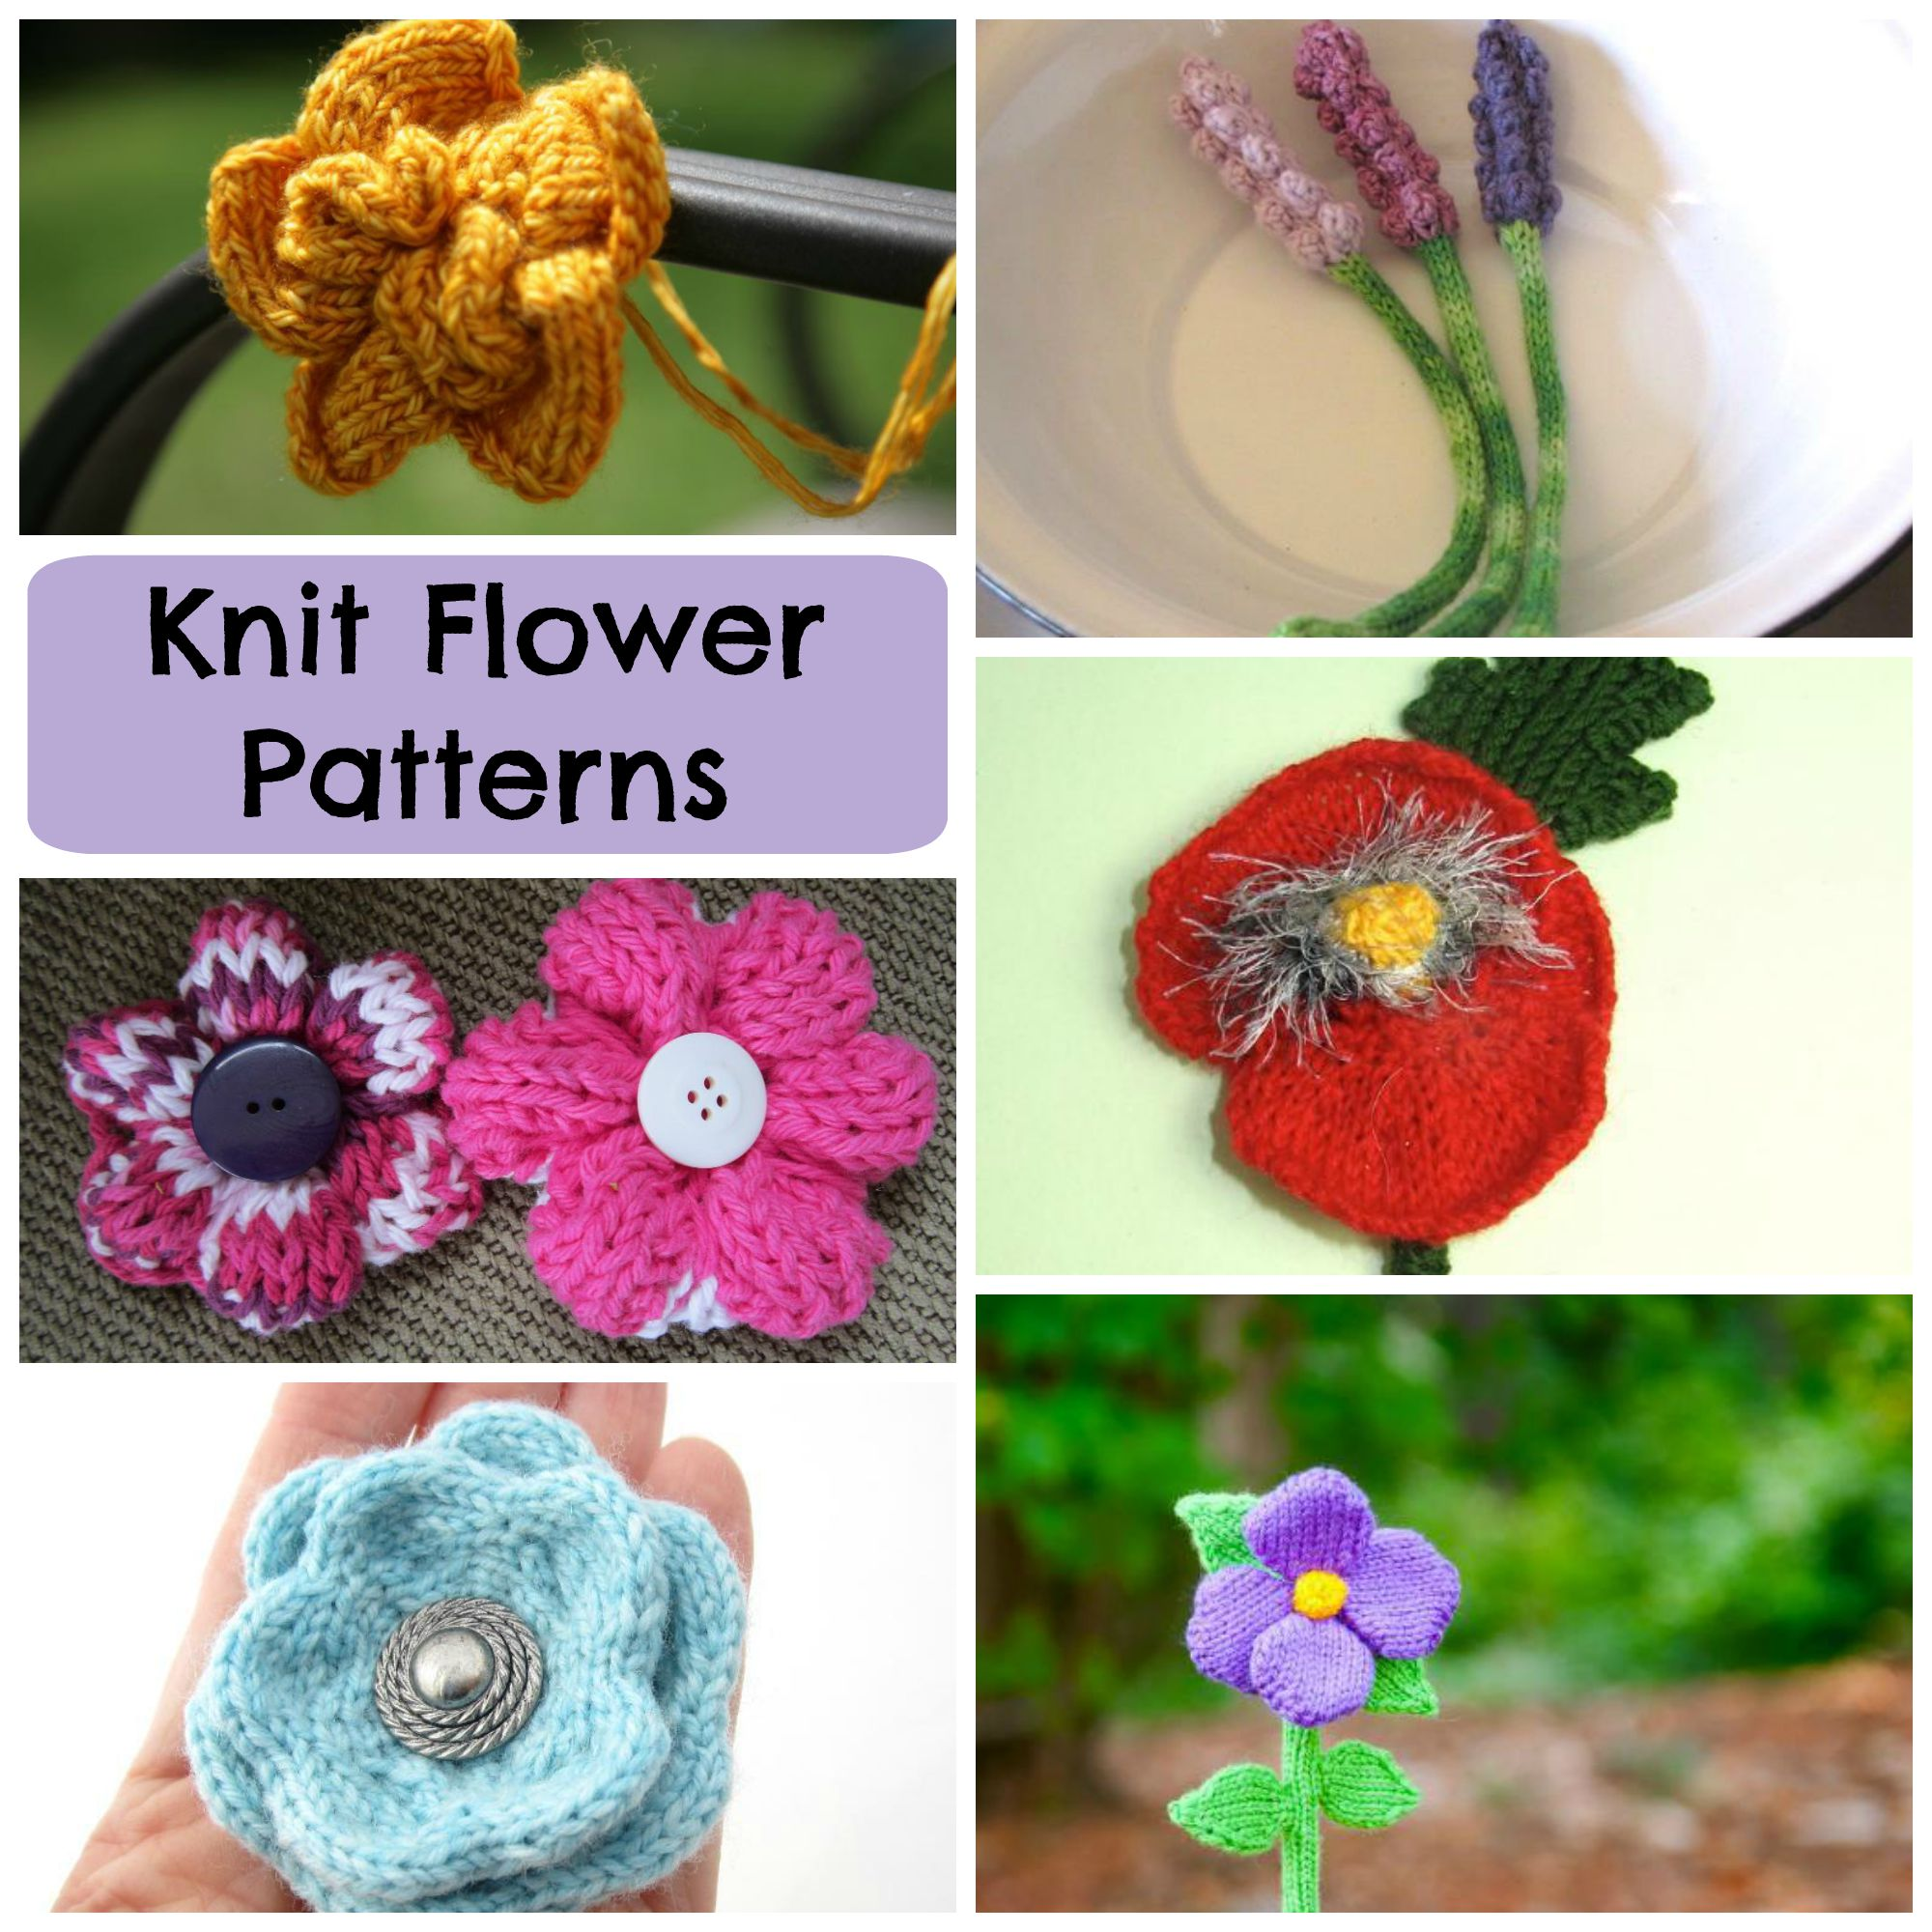 Knit Flower Patterns